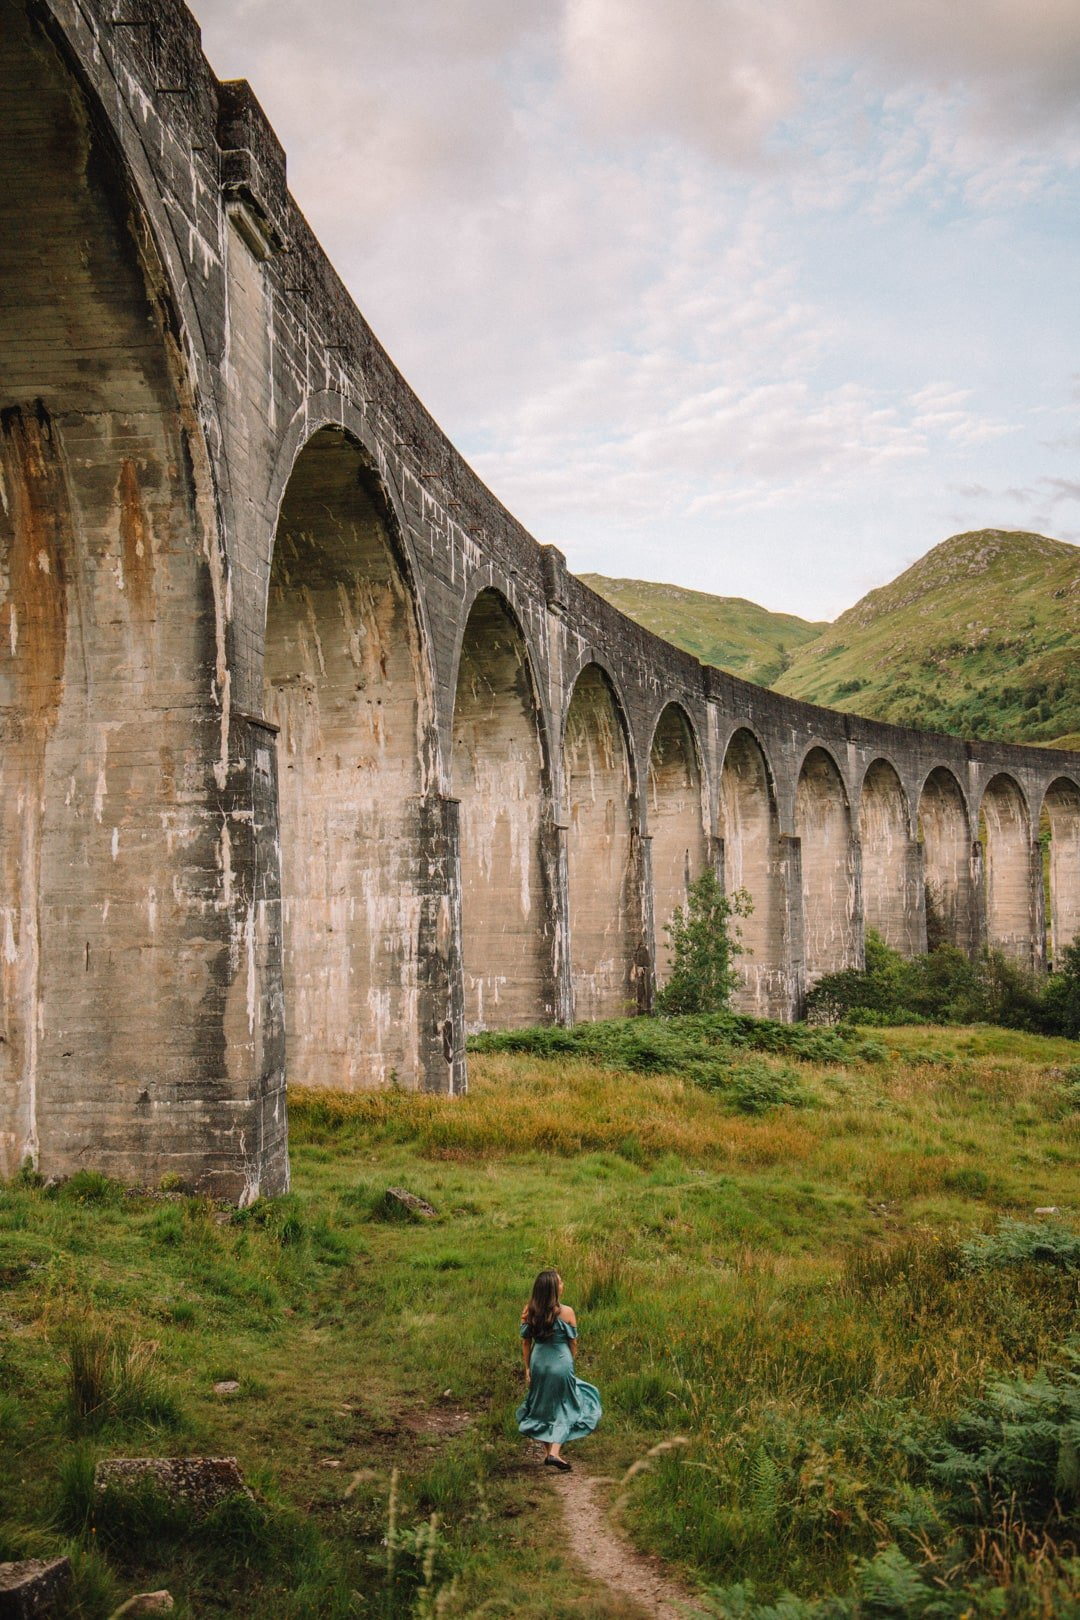 Add the Harry Potter Bridge to your list of places to visit in Scotland